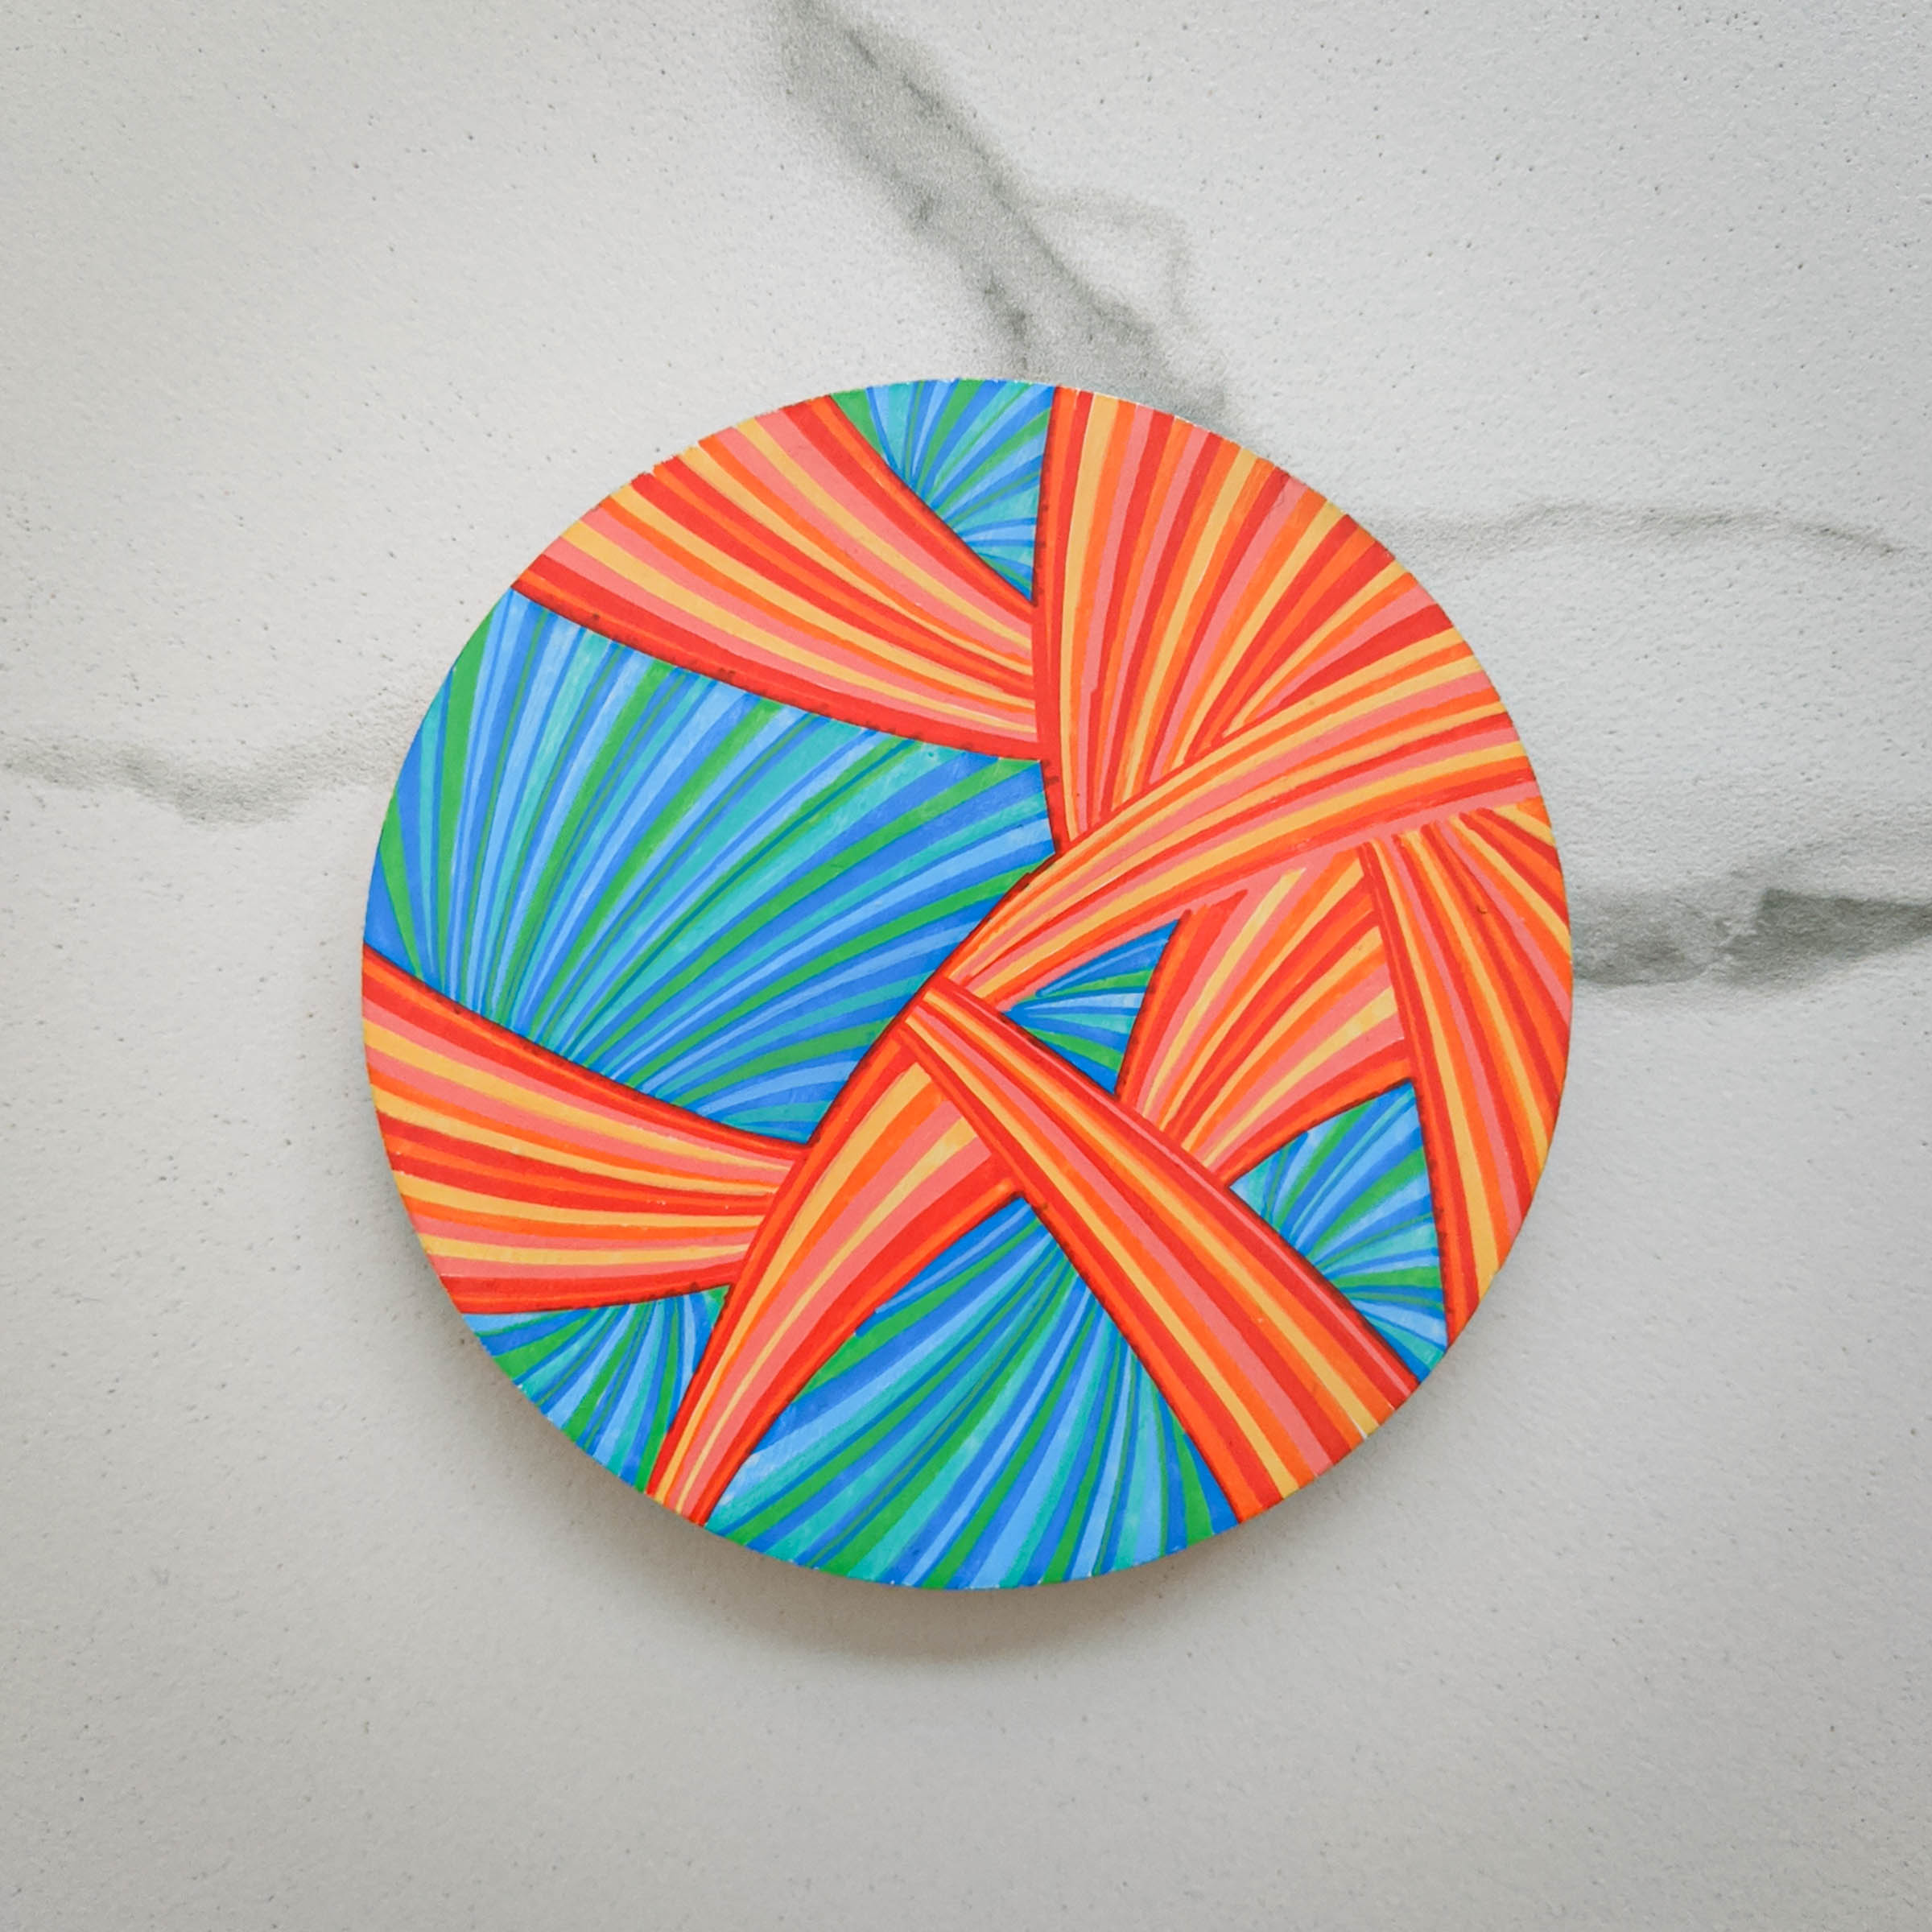 fish tail, saison de poisson, fish season, season of fish, line art, horizons, lines, red, blue, saffron, teal, khaosphilos, crimson, turquoise, crimson and turquoise, hand painted, wearable art, display art, original art, contemporary art, contemporary artist, naina redhu, naina.co, 3 inches diameter, 3 inch, circular canvas, acrylics on wood, wooden brooch, brooch, art brooch, wearable art brooch, wearable art jewellery, canvas display, magnet clasp, acrylic painting, khaos philos, chaos lover